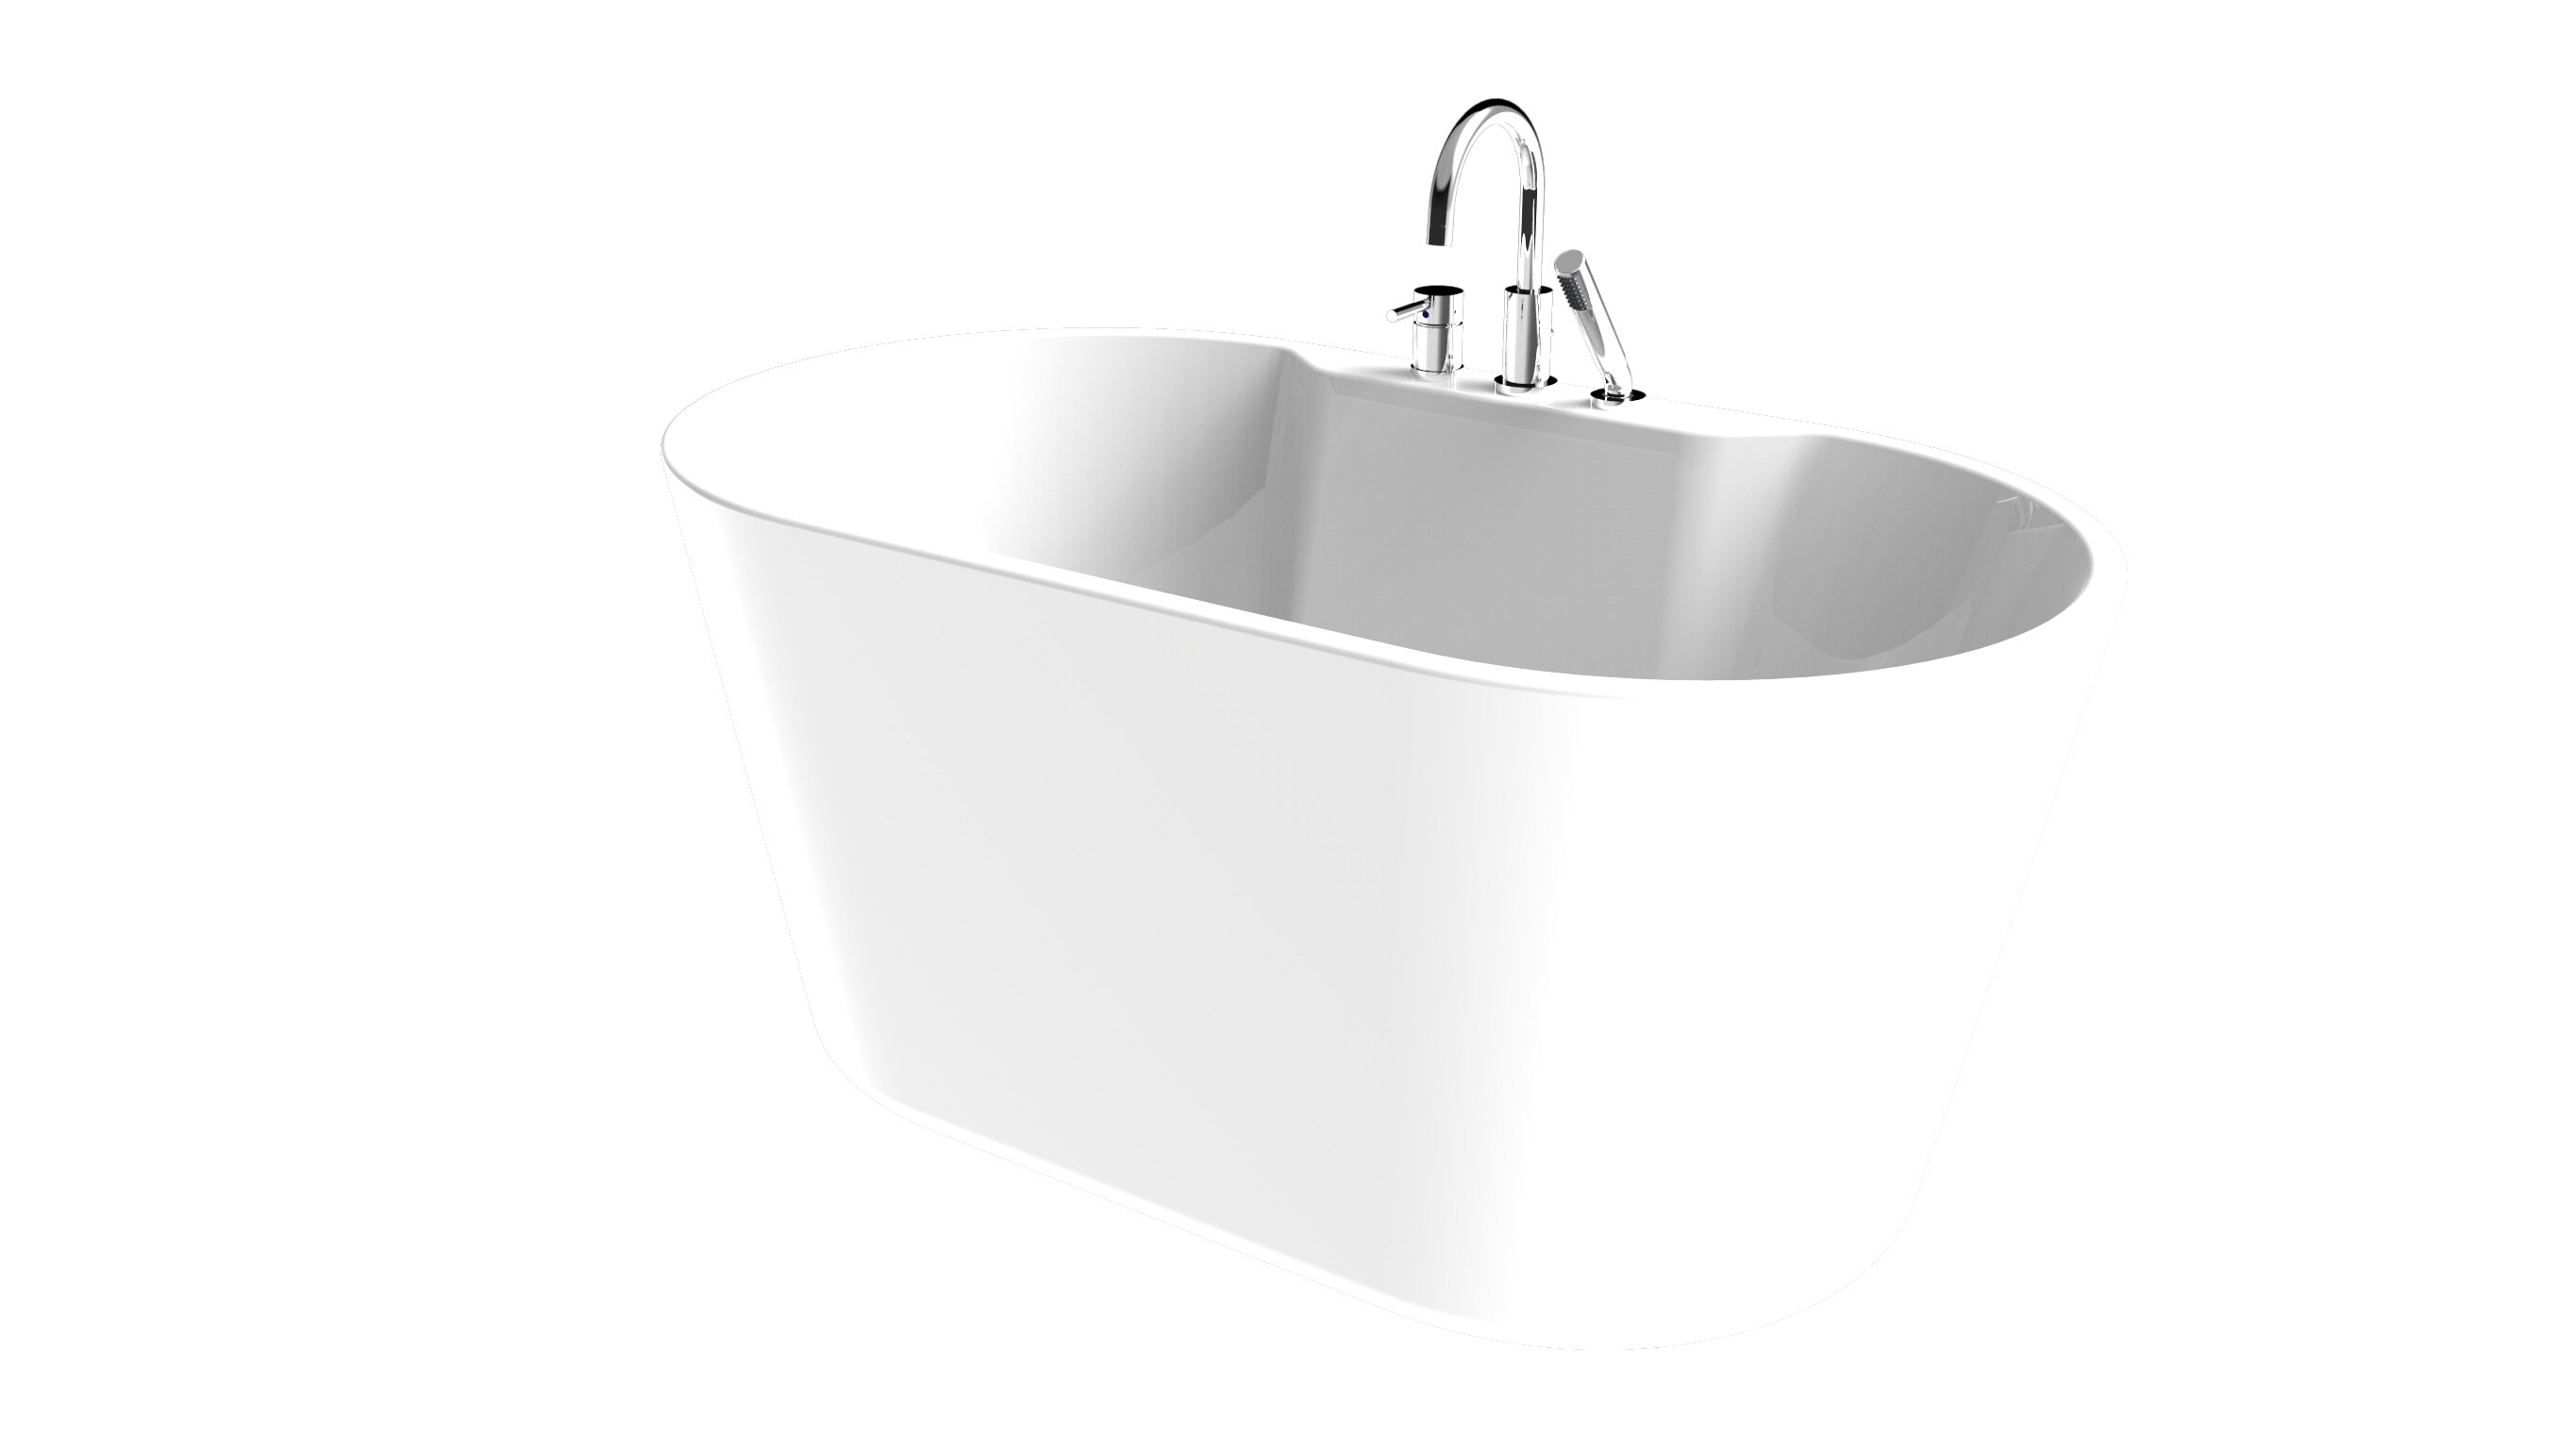 free home freestanding shipping garden decors today product wyndham bathtub bathtubs overstock ove marilyn